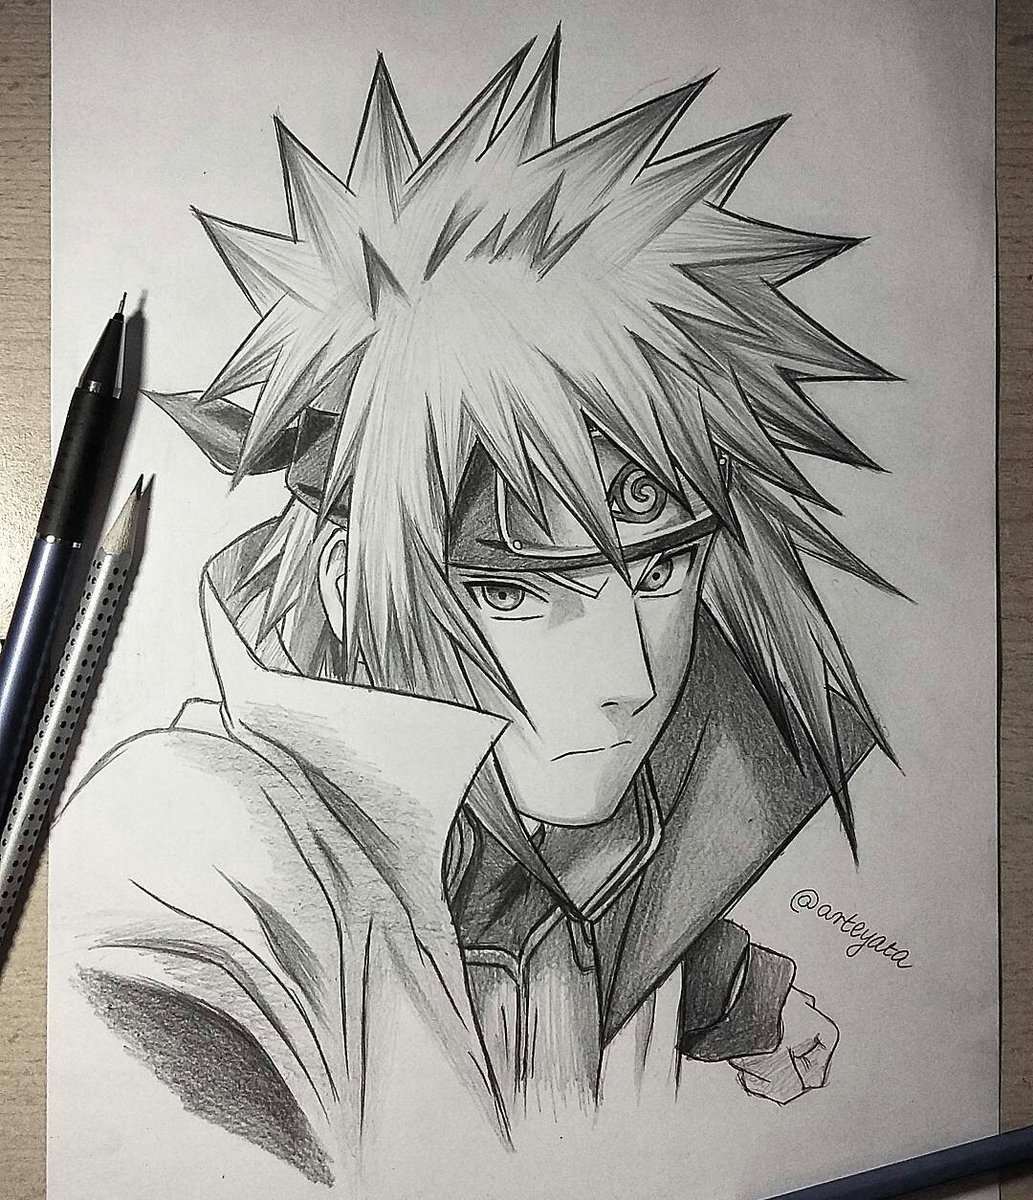 Arteyata on twitter animedrawing anime drawing manga art sketch mangadrawing animeart animegirl draw otaku kawaii animeboy